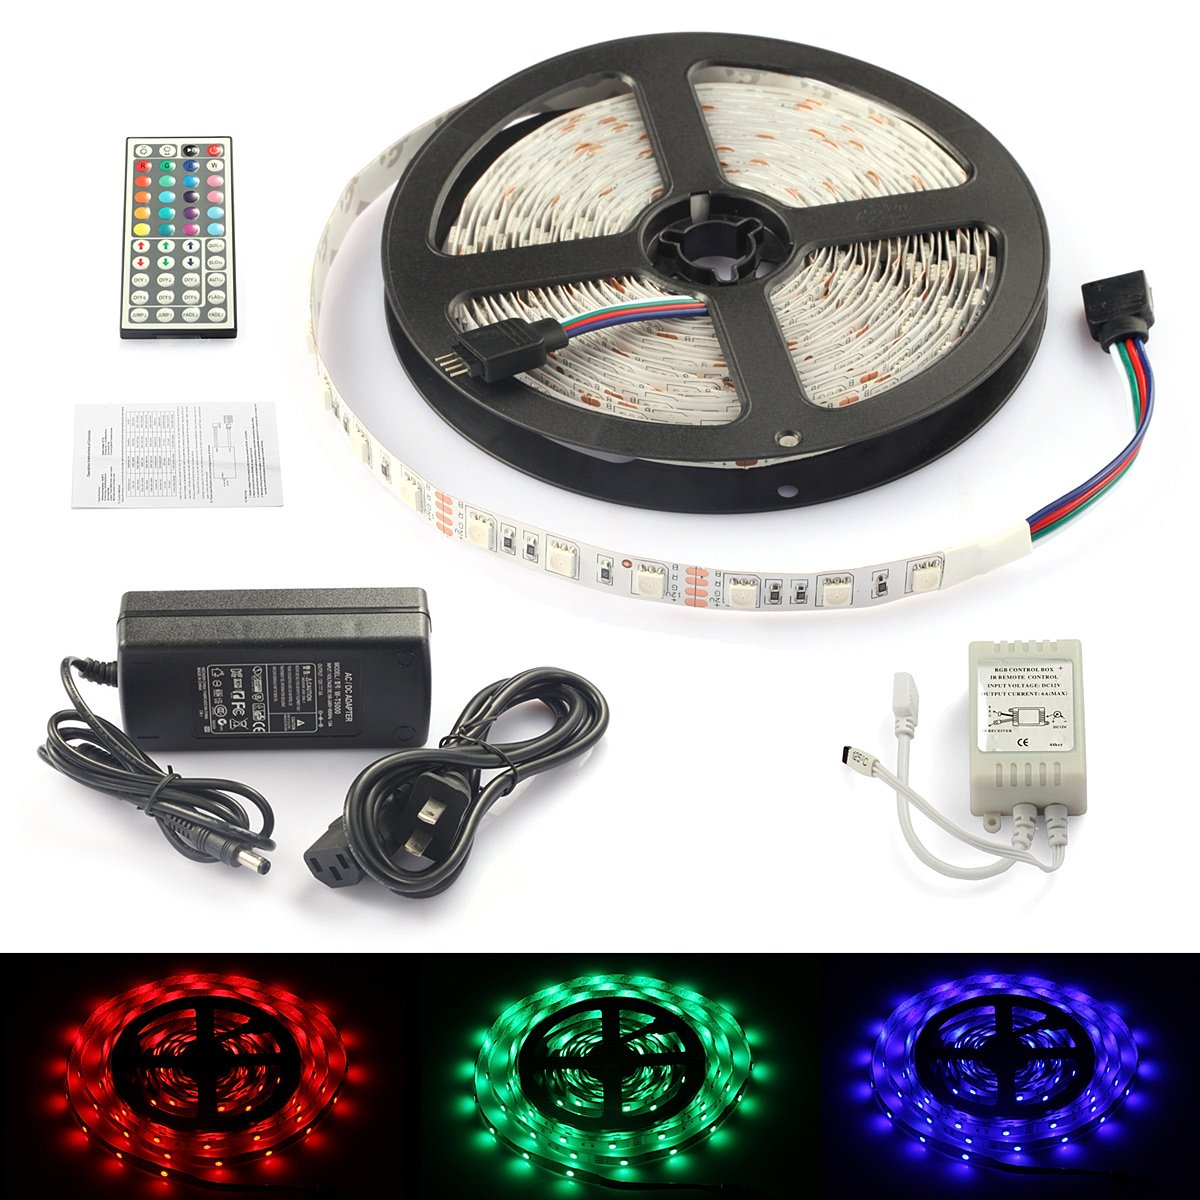 Rxment® Led Strip Lighting Complete Kit 5M 5050 RGB 300leds Full Kit with 44 Keys IR Remote +Control Box+5A Power Supply for Car Home Lighting & Kitchen Decorative biginflatabel cask inflatabel beer can with led lighting 3 5m high for oktoberfest festival party model building kits